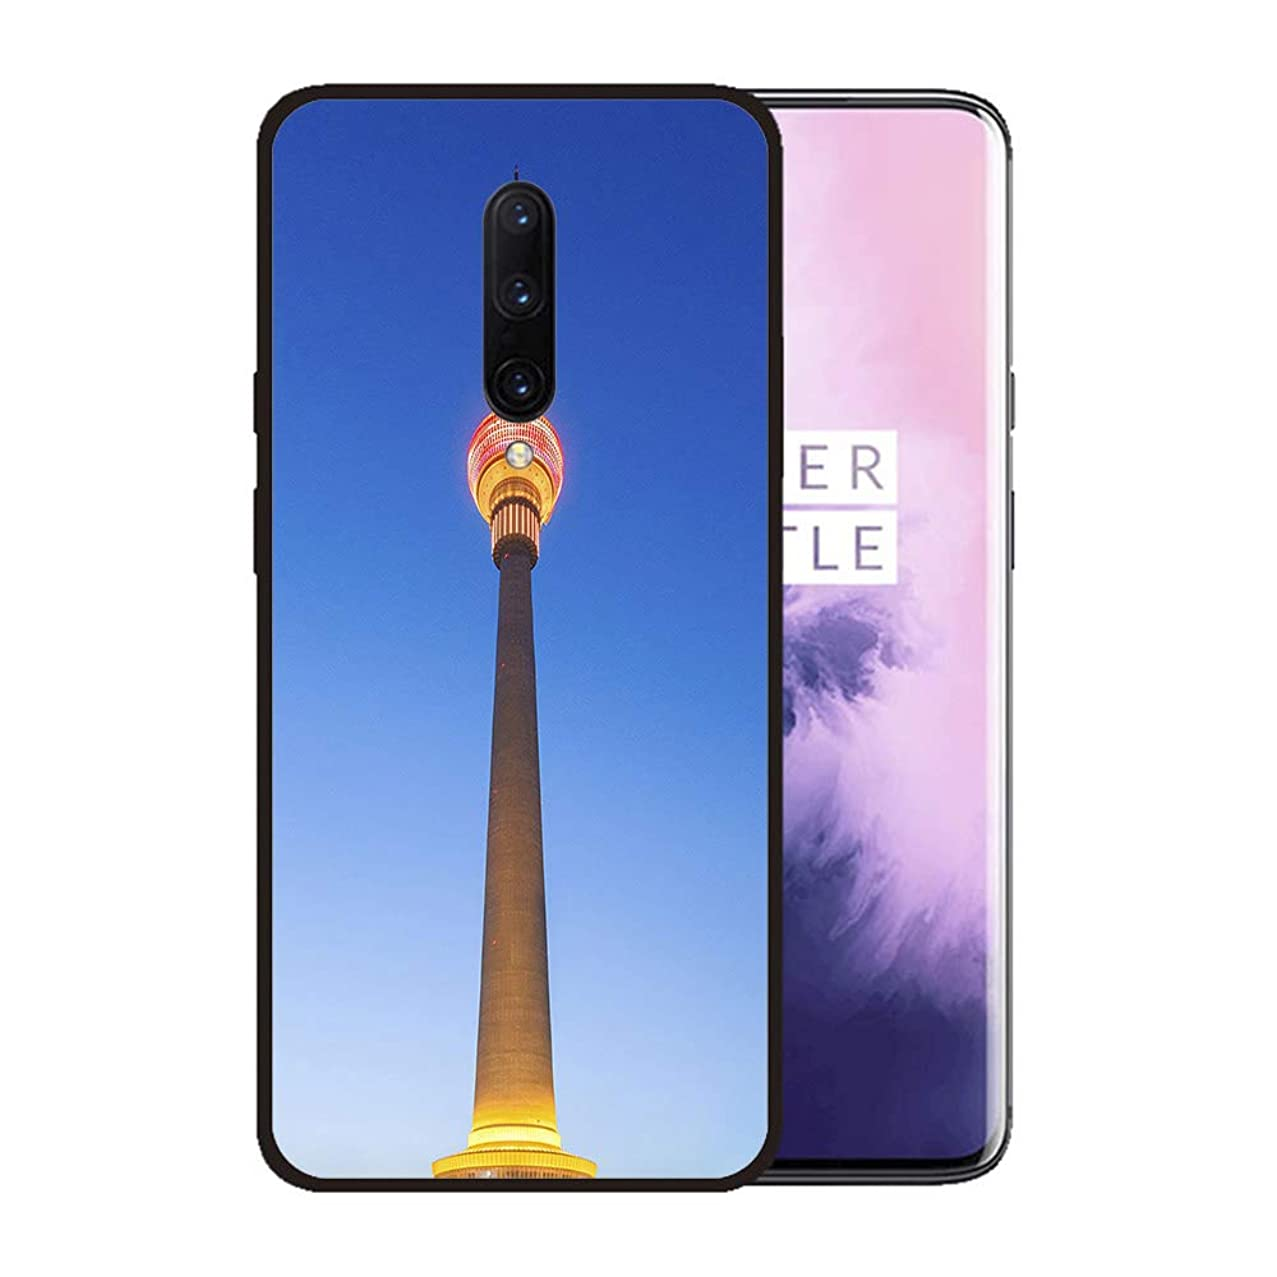 Case for OnePlus 7 pro,Silicone Cover and Tempered Glass 2 Materials,Non-Slip, Anti-Drop, Anti-Scratch,Depict- Beijing TV Tower Illuminated in Chinese Lantern Style